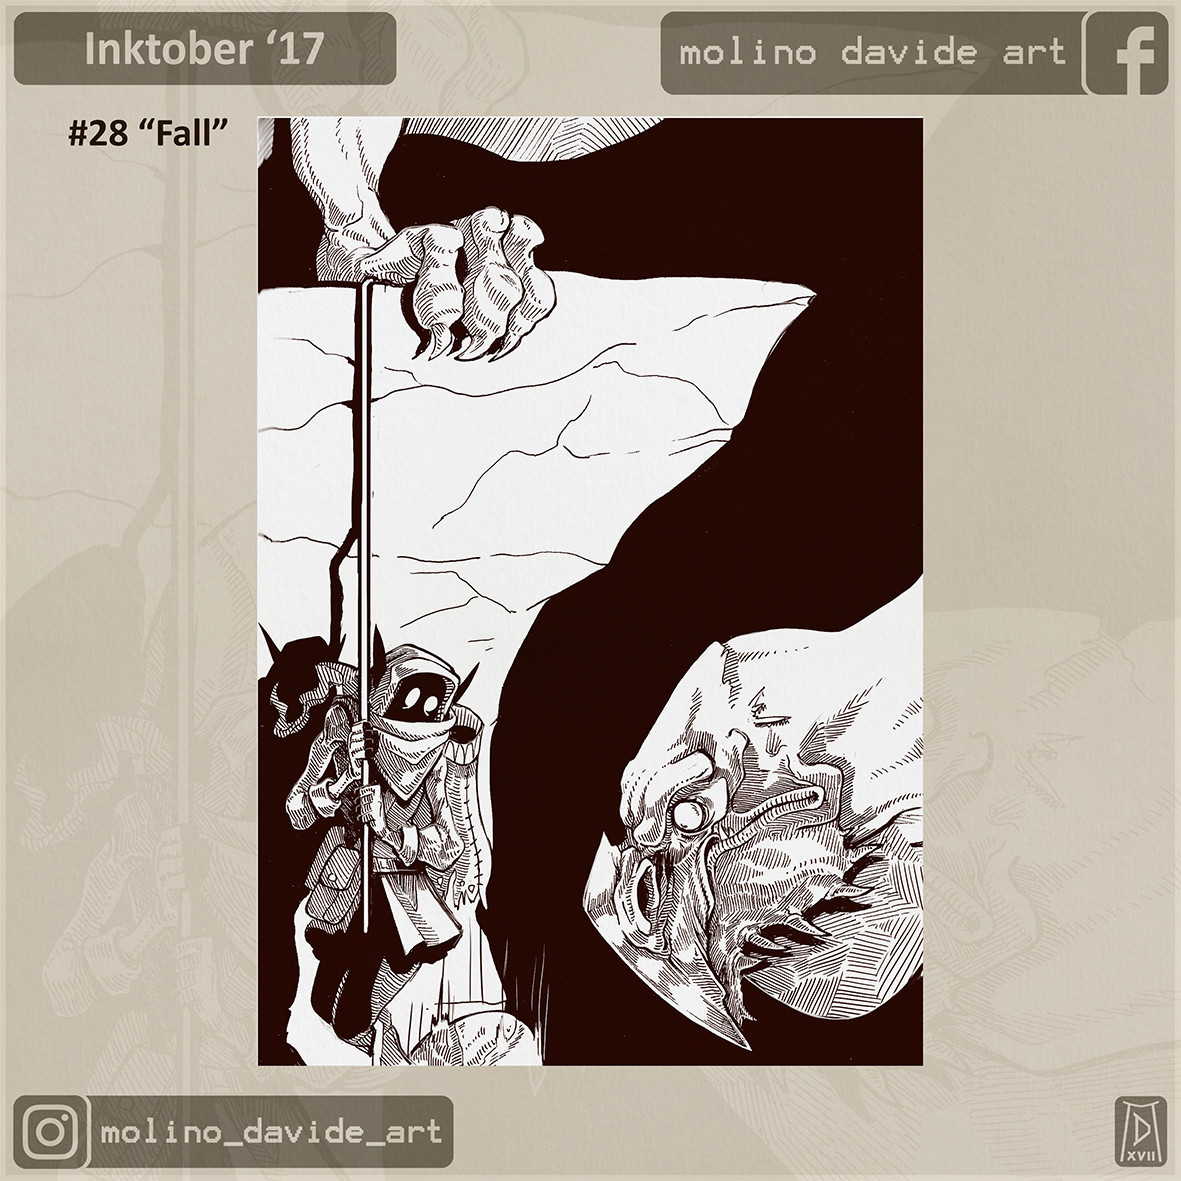 To understand it better, look out for the 27th inktober!